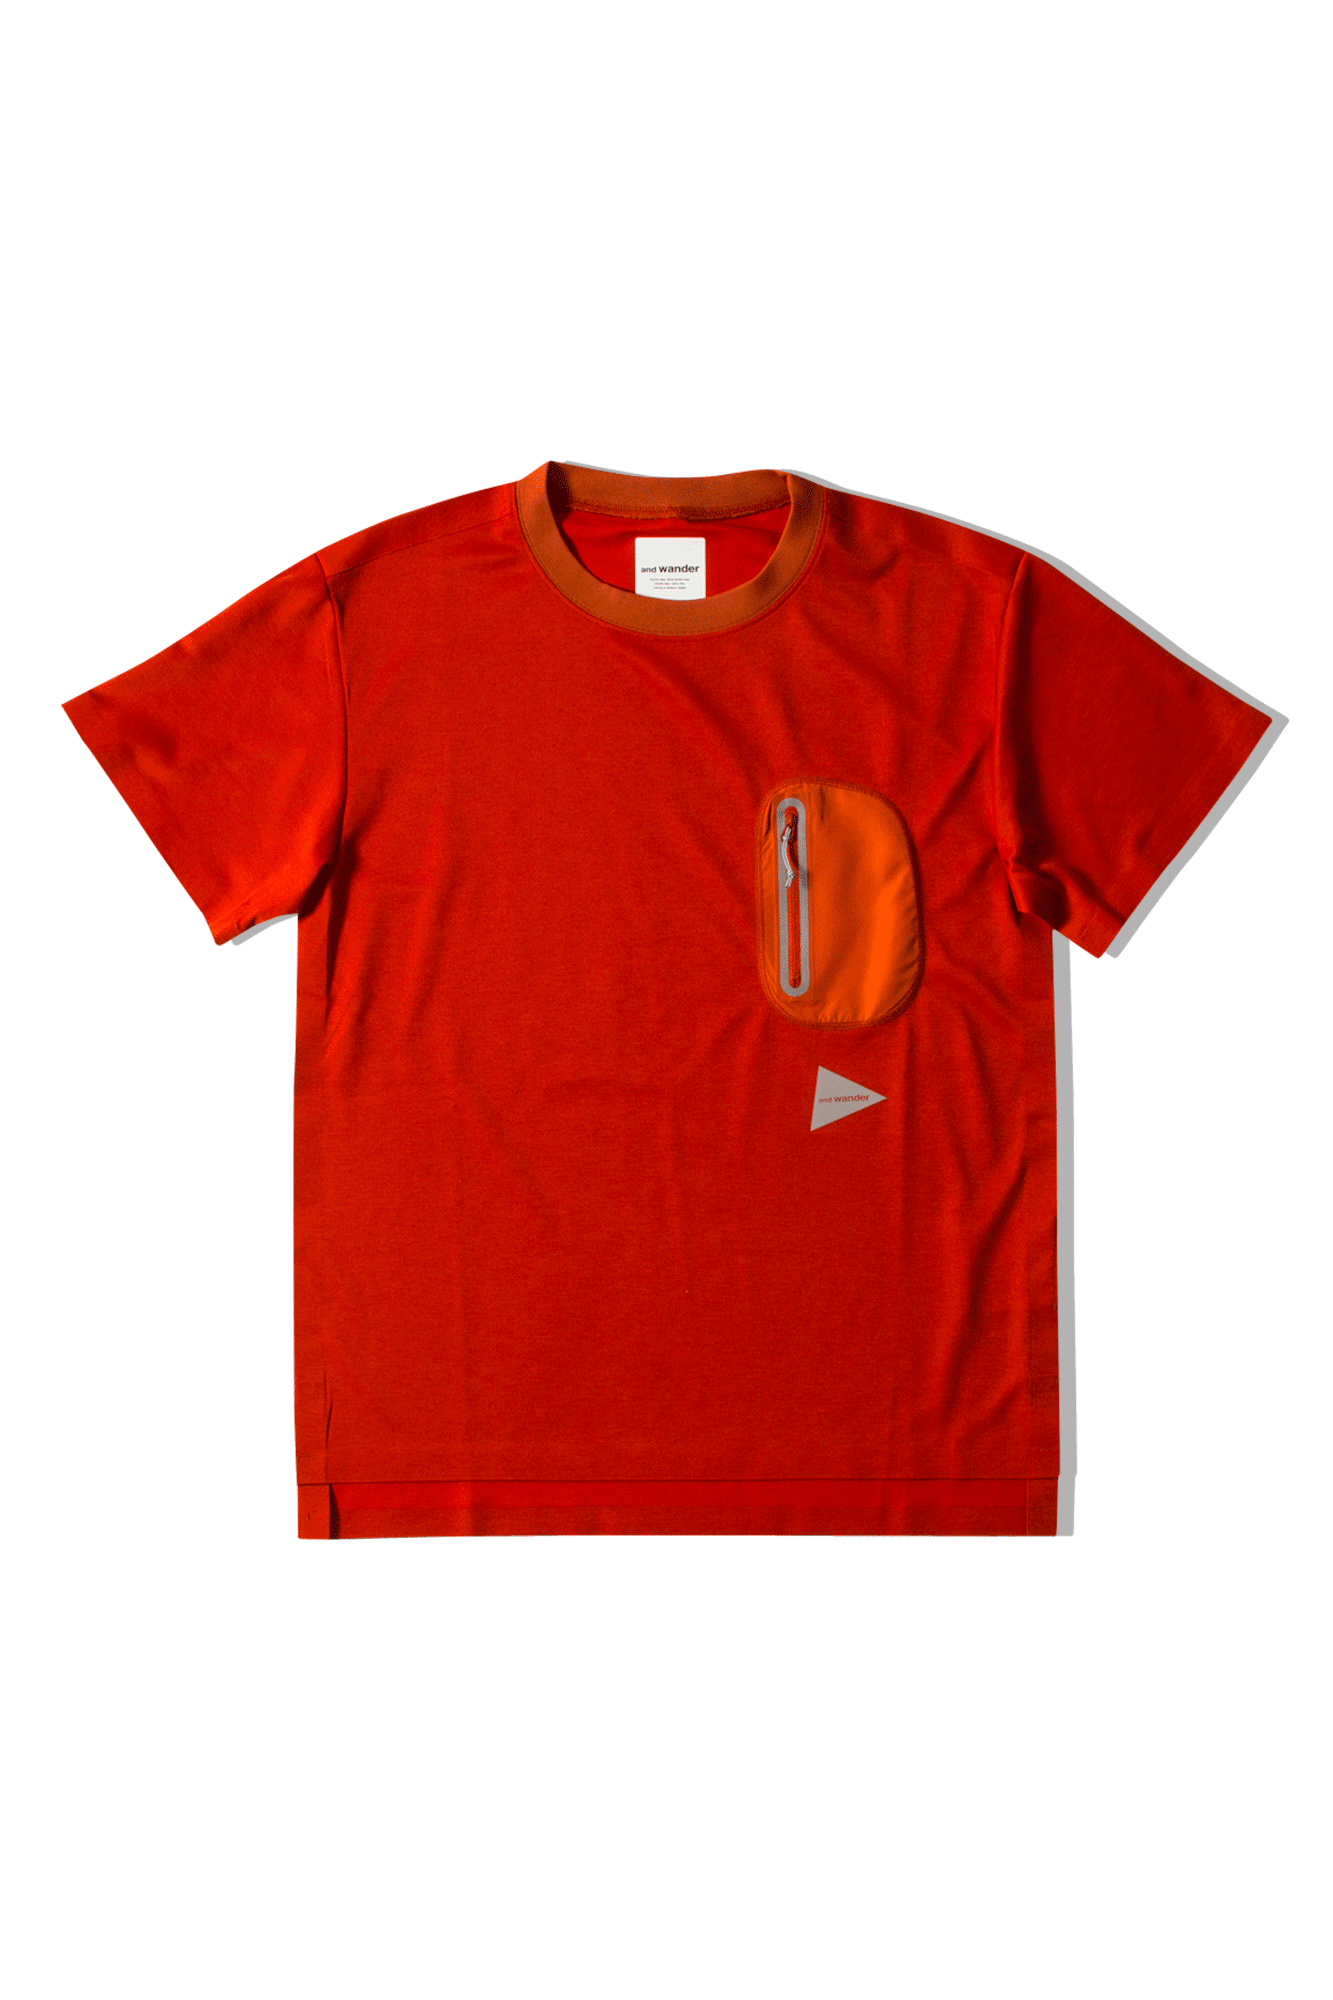 And Wander T-Shirts Seamless Tee Red AW91-JT628#000#RED#0 - One Block Down